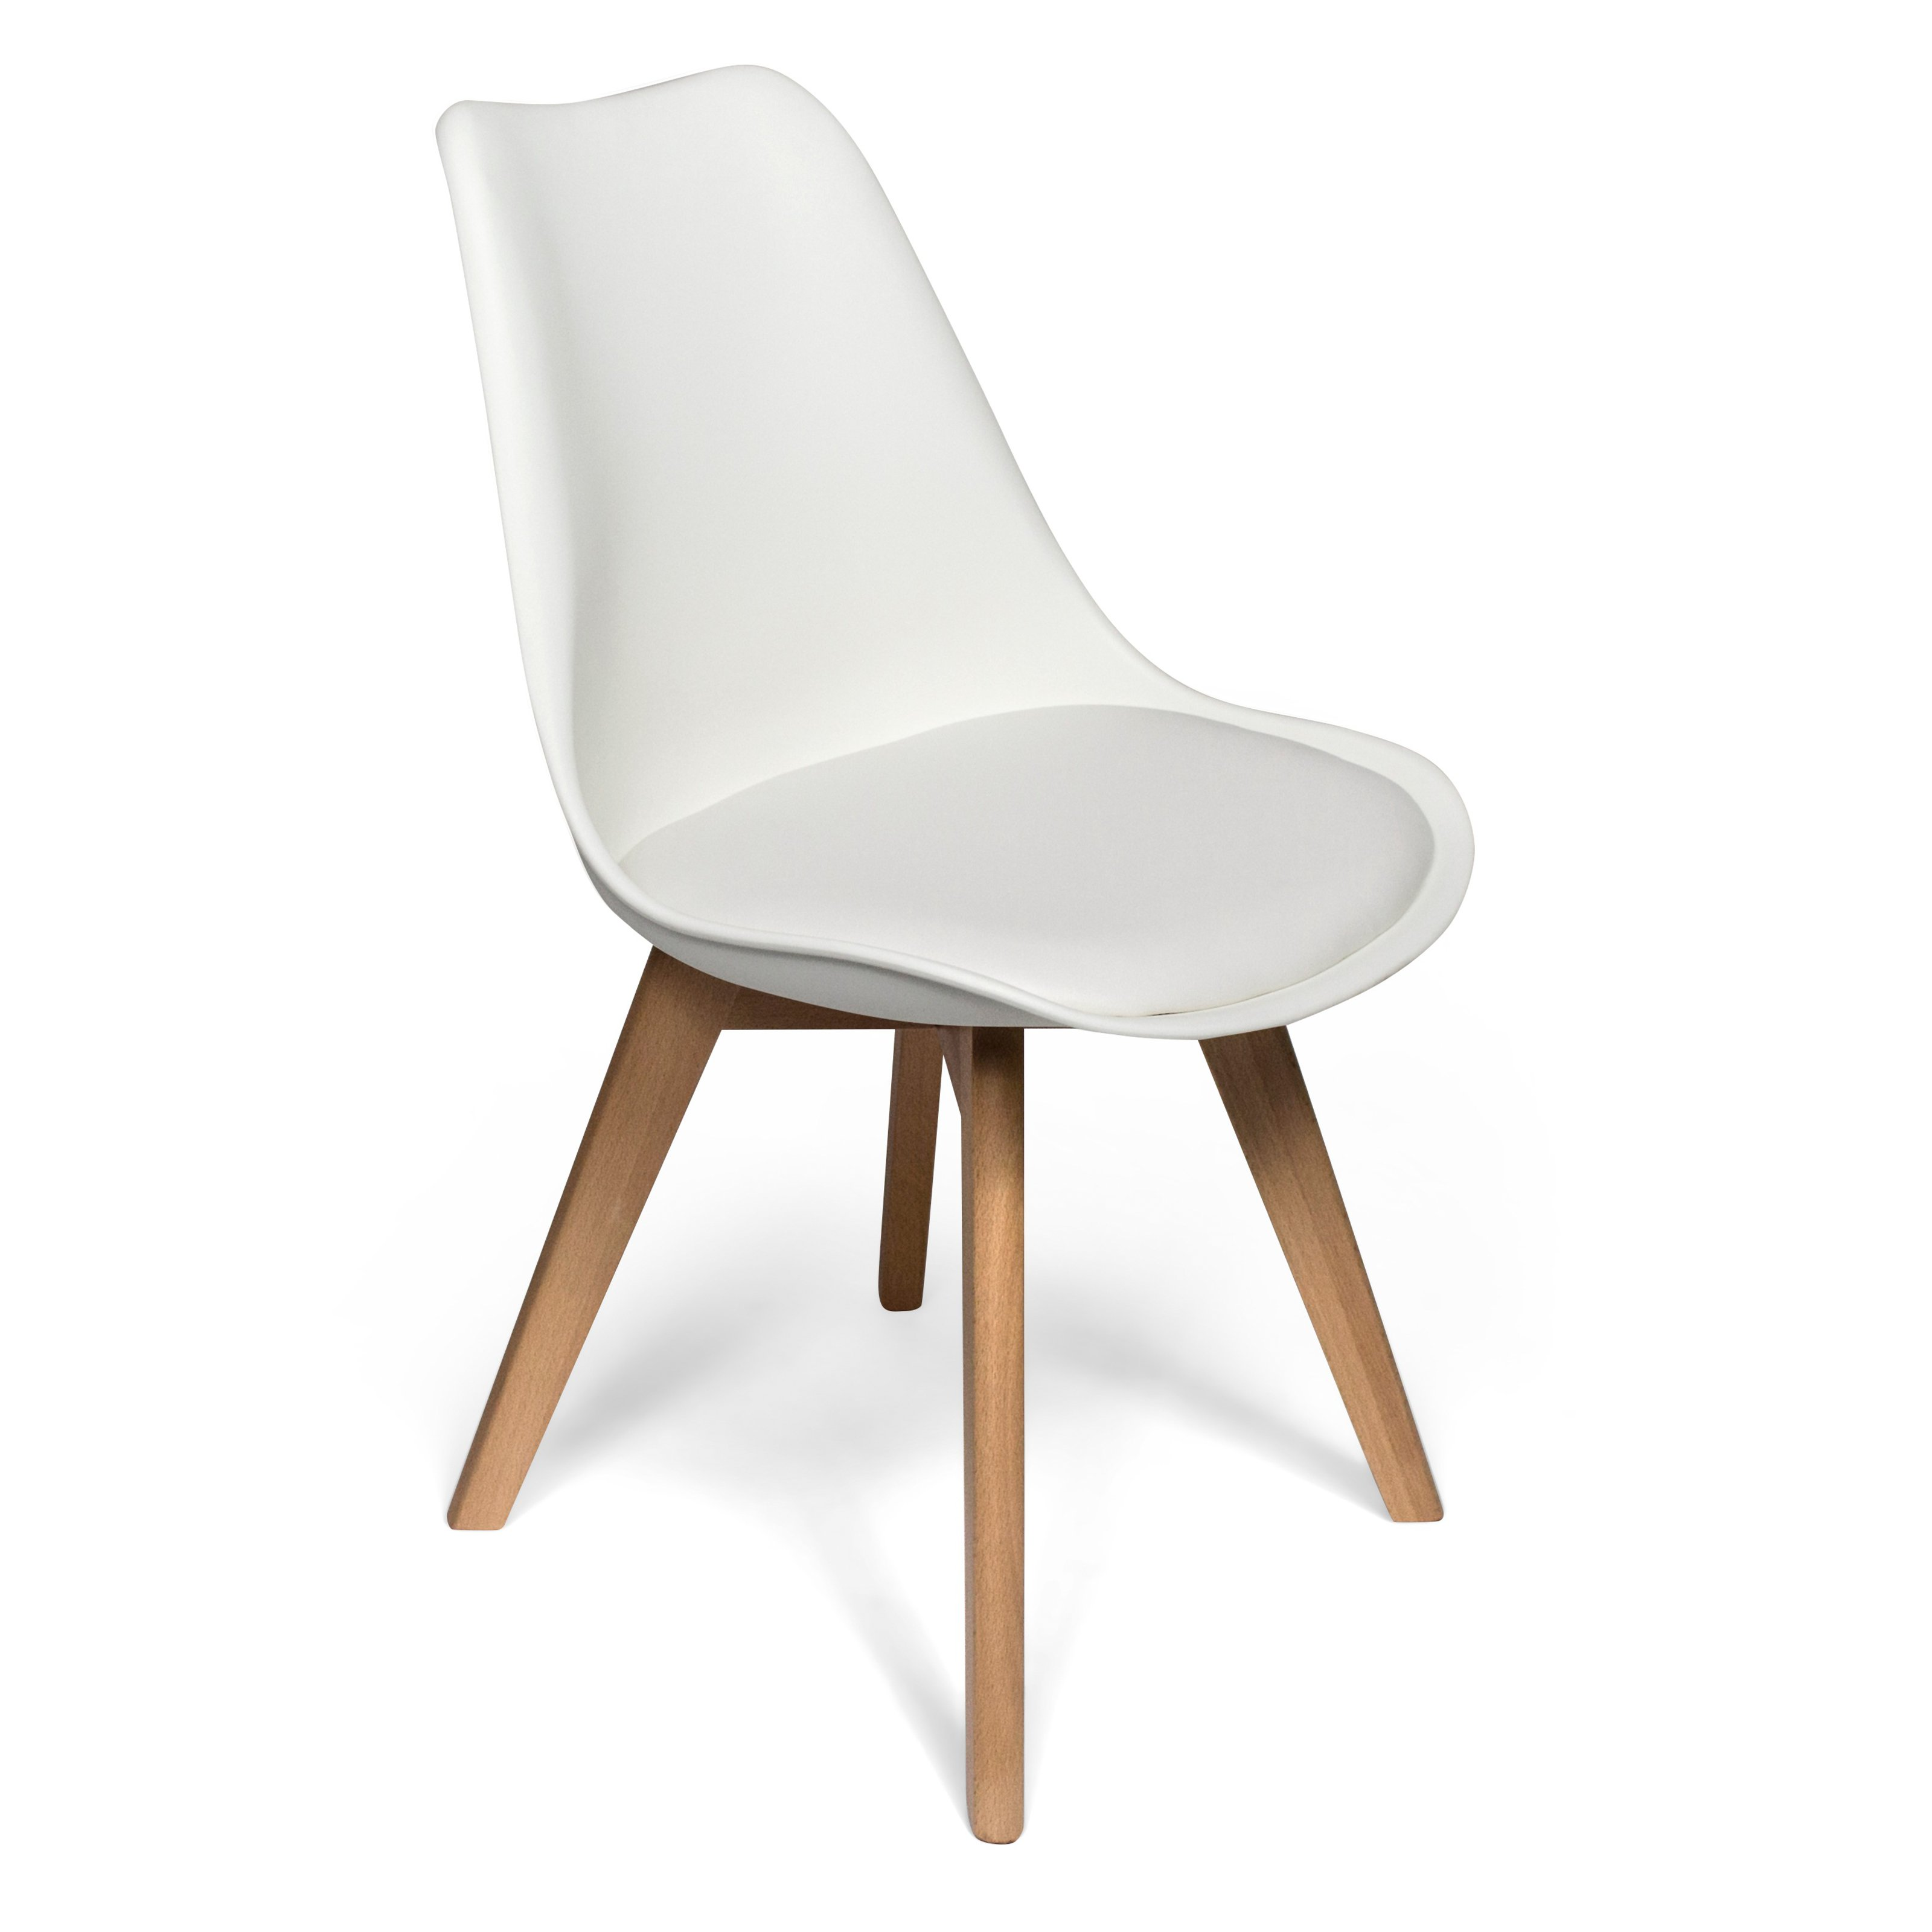 Image of Aeon Furniture Celine Dining Chair - Set of 2